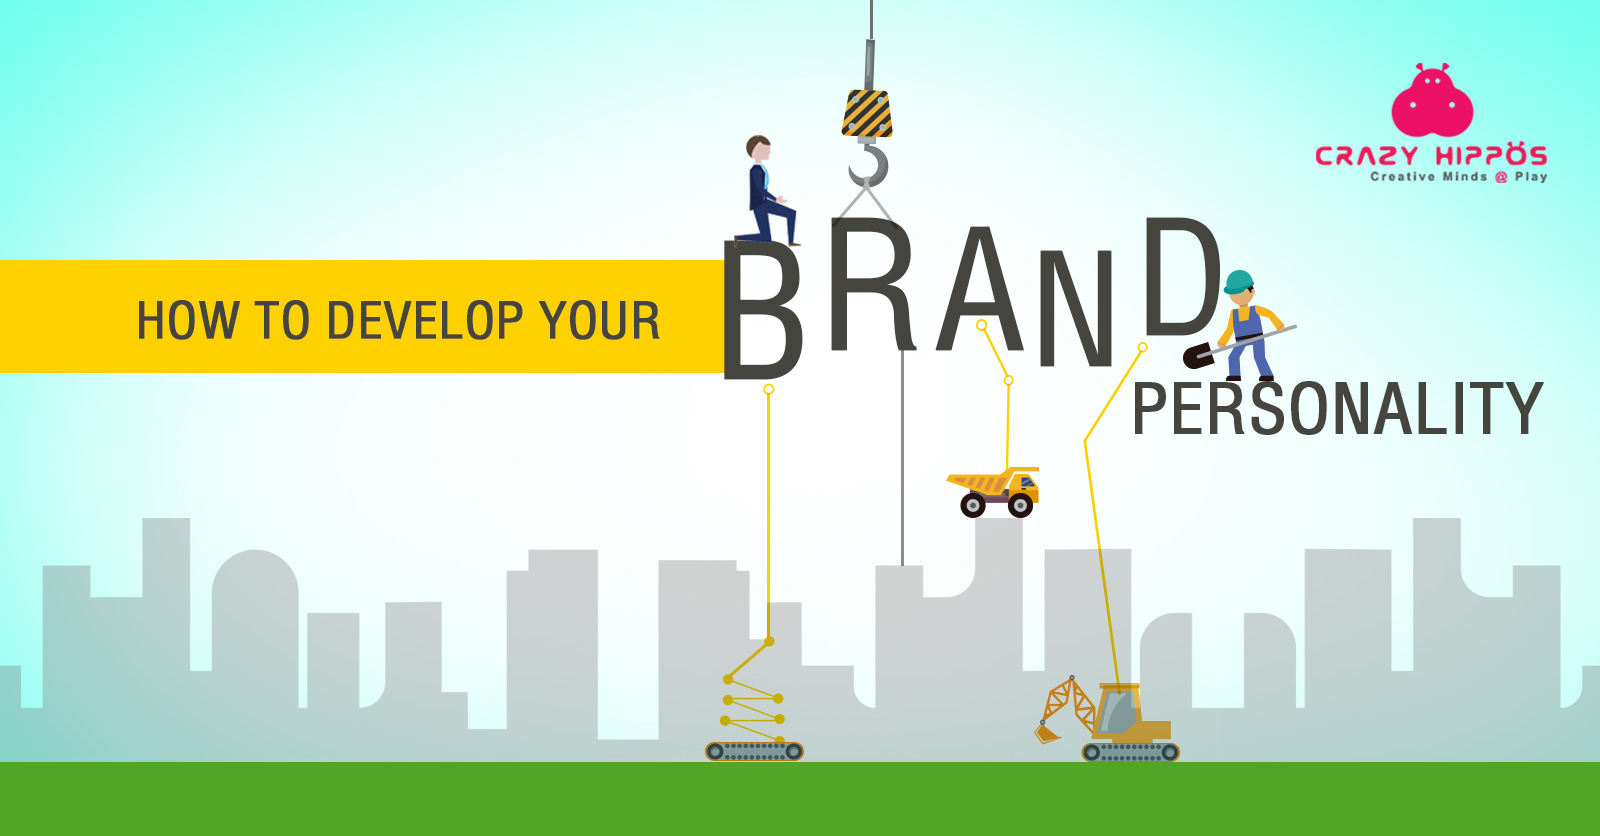 Develop your Brand's Personality